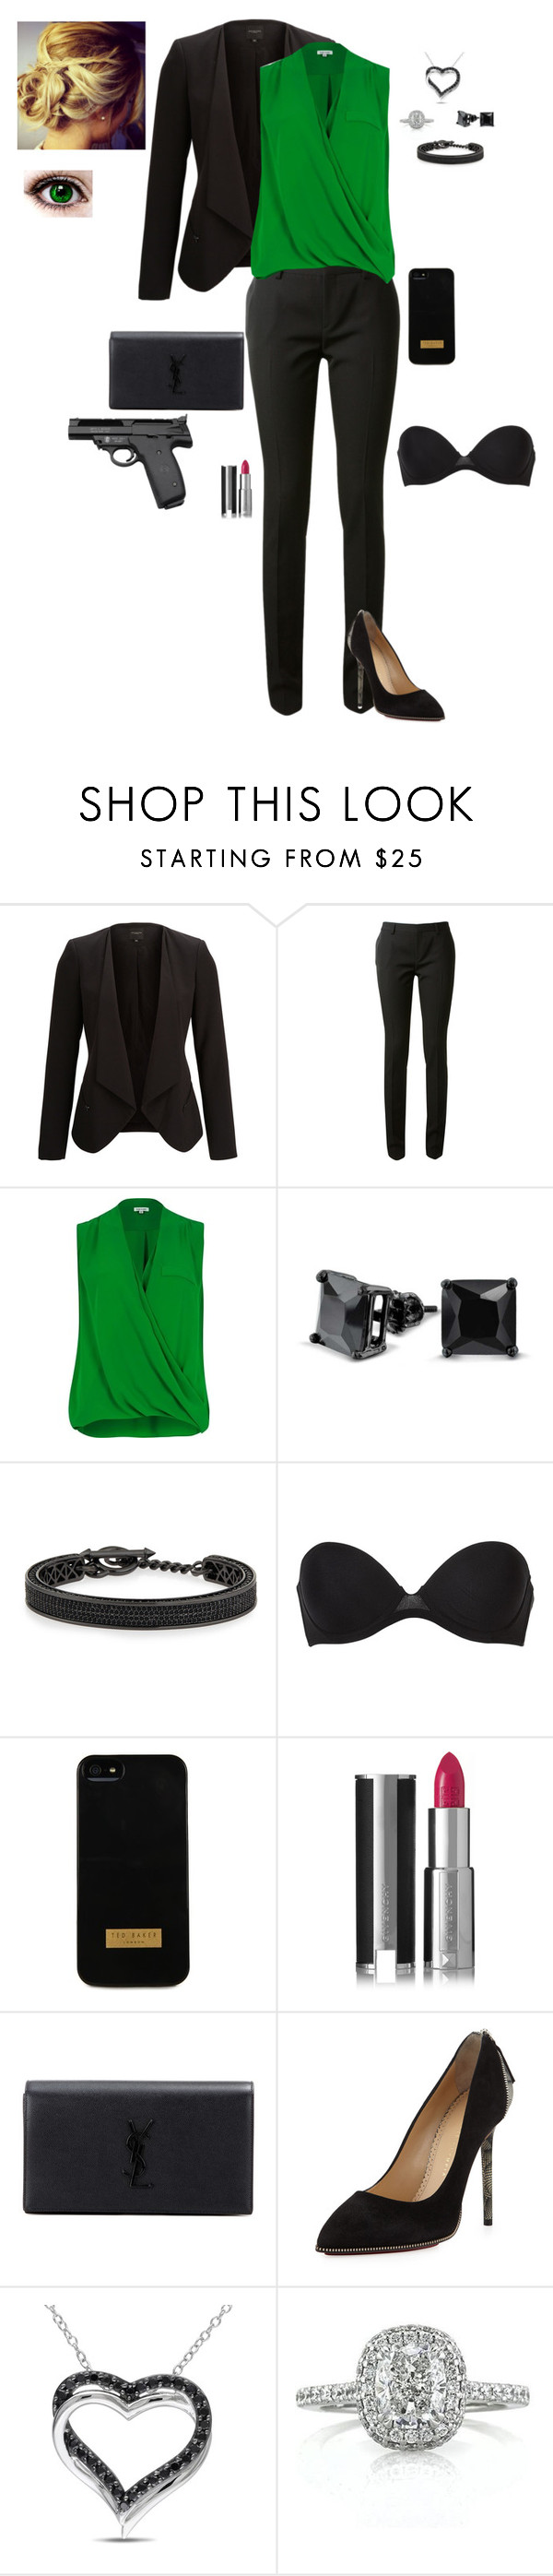 """""""Business"""" by gone-girl ❤ liked on Polyvore featuring SELECTED, Yves Saint Laurent, River Island, Bling Jewelry, Eddie Borgo, Calvin Klein Underwear, Ted Baker, Givenchy, Charlotte Olympia and Smith & Wesson"""